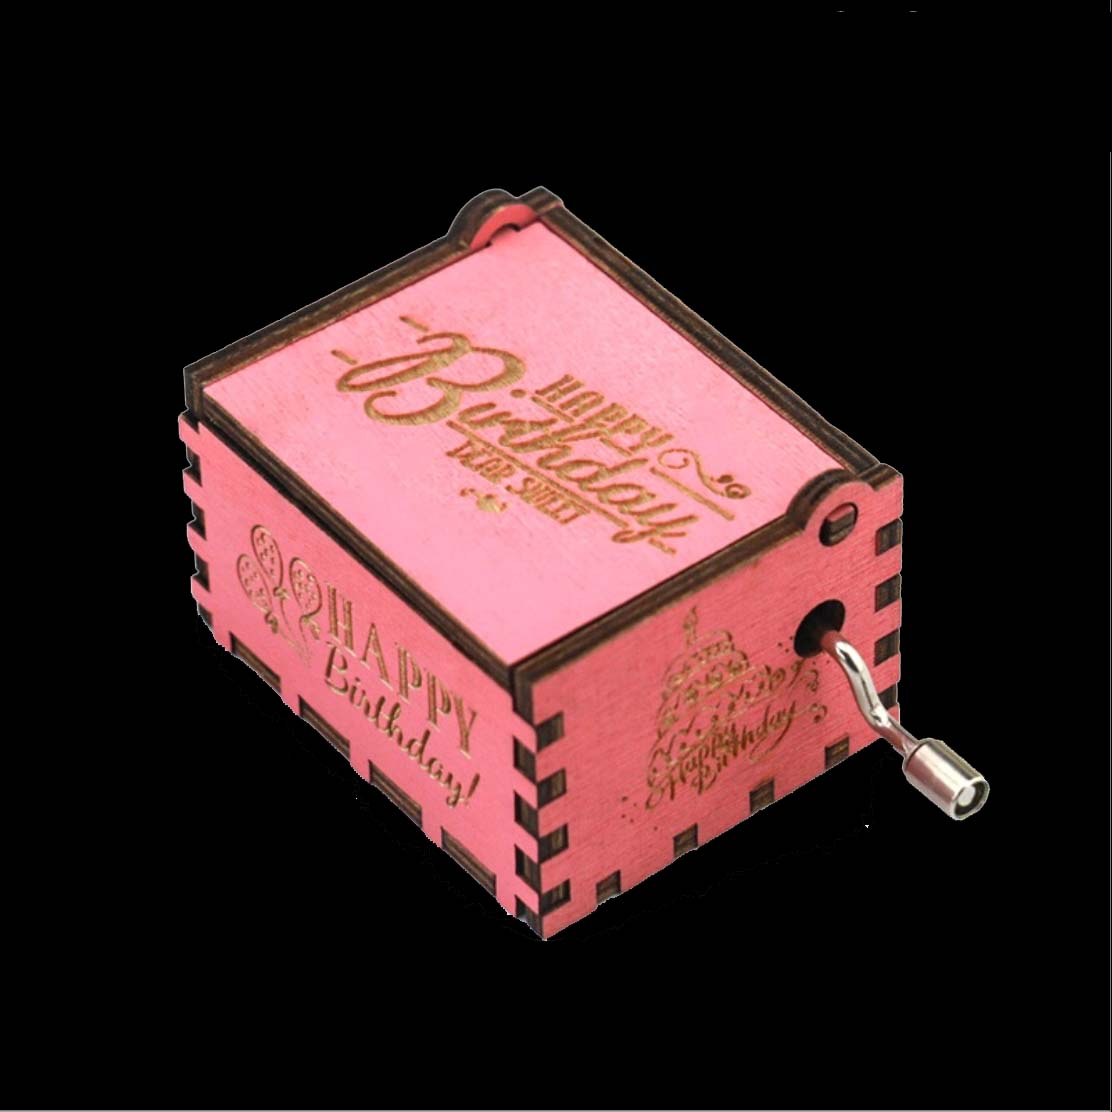 Wood Music Box Game of Thrones Harri Potter Wooden Music Box Pink Antique Carved Wooden Hand Crank Music Boxs Birthday Gift in Music Boxes from Home Garden